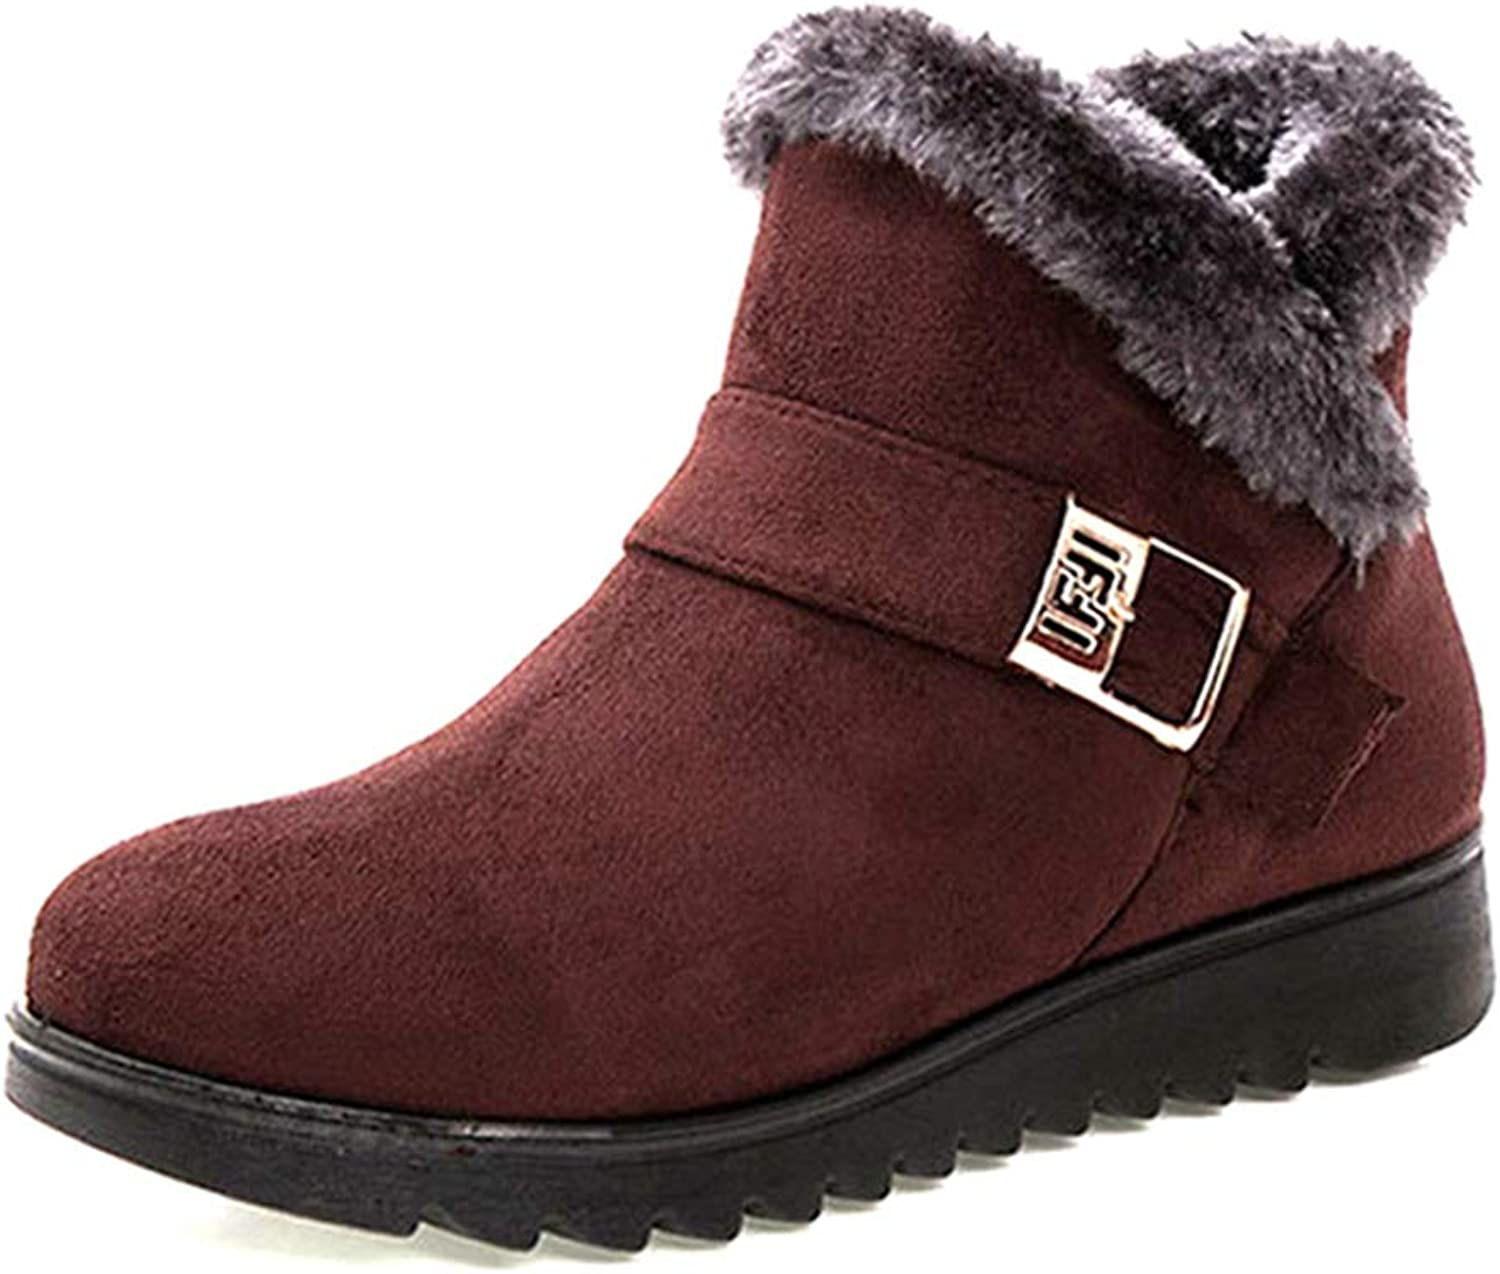 Fay Waters Womens Short Boots Fur Suede Flock Zip Buckle Thick Heels Winter Snow Ankle Booties